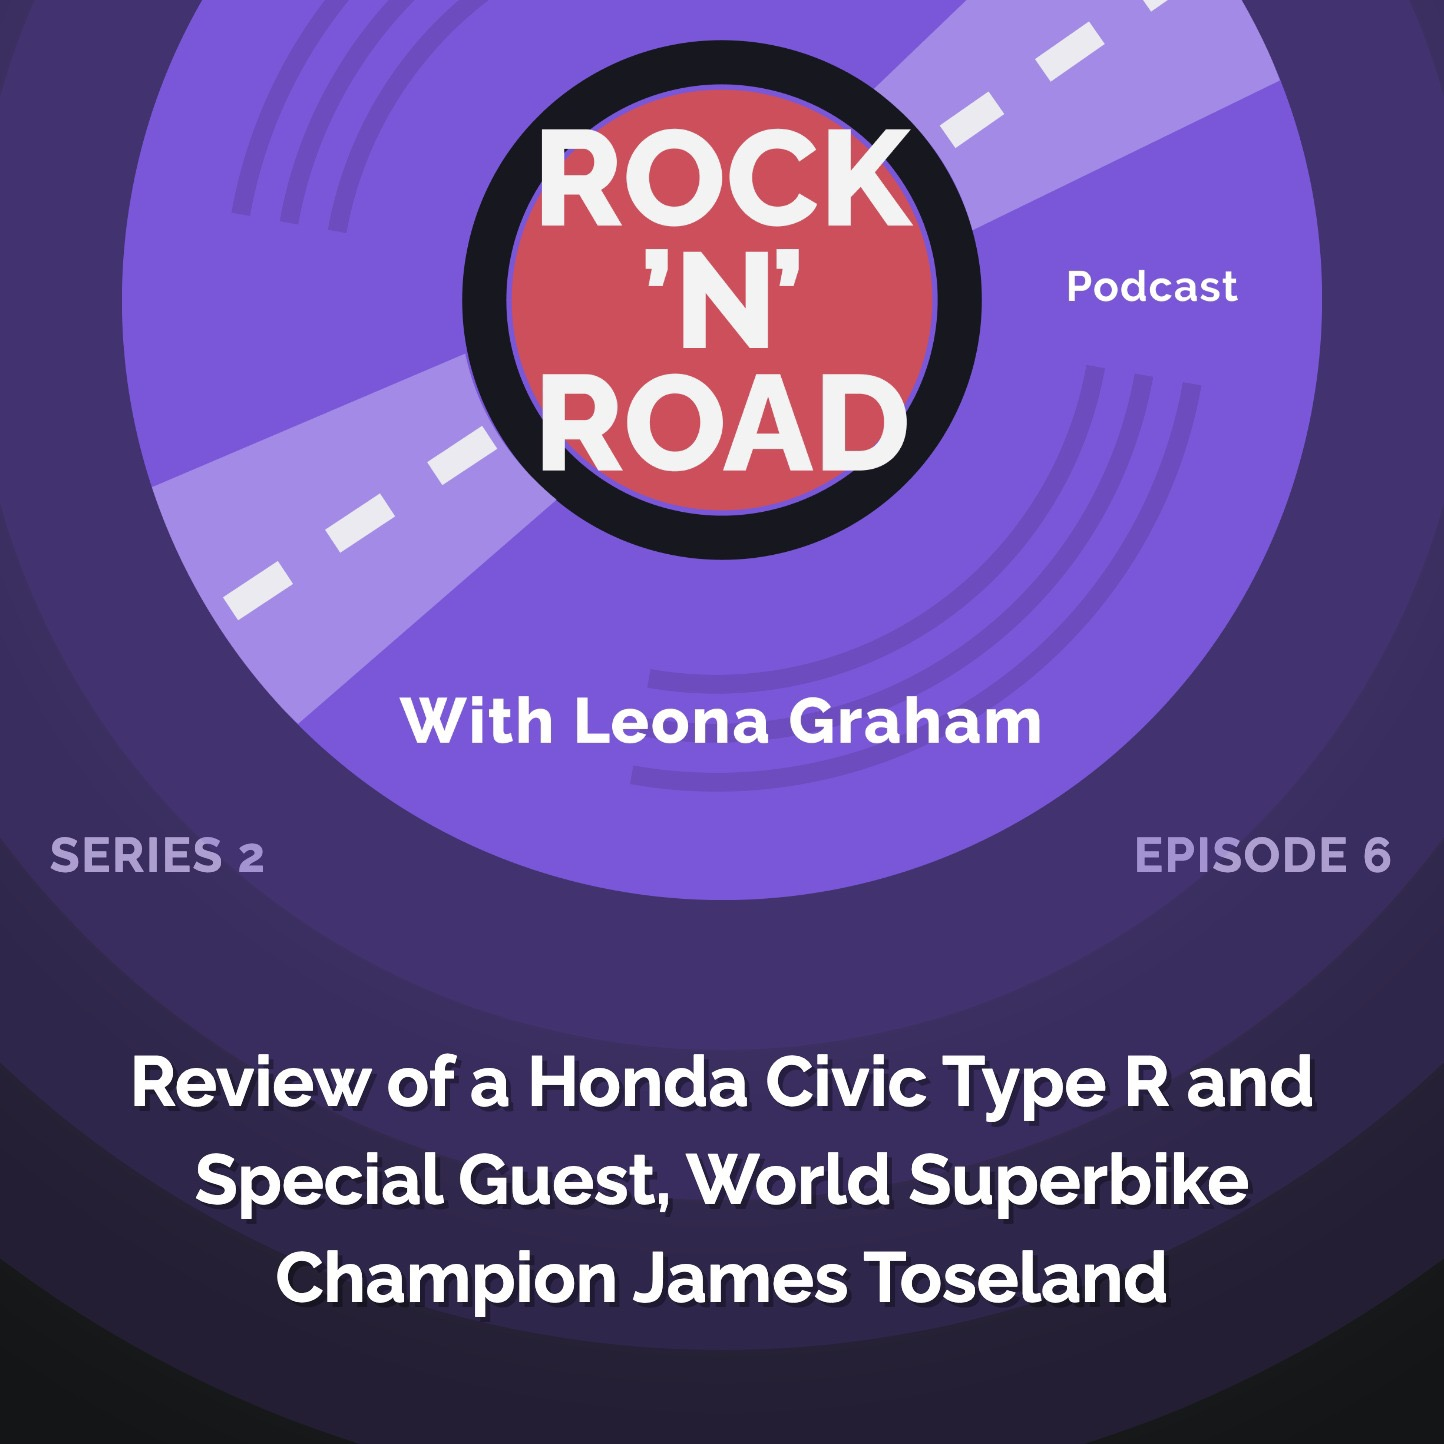 Series 2 Episode 6: Review of a Honda Civic Type R and World Superbike Champion James Toseland